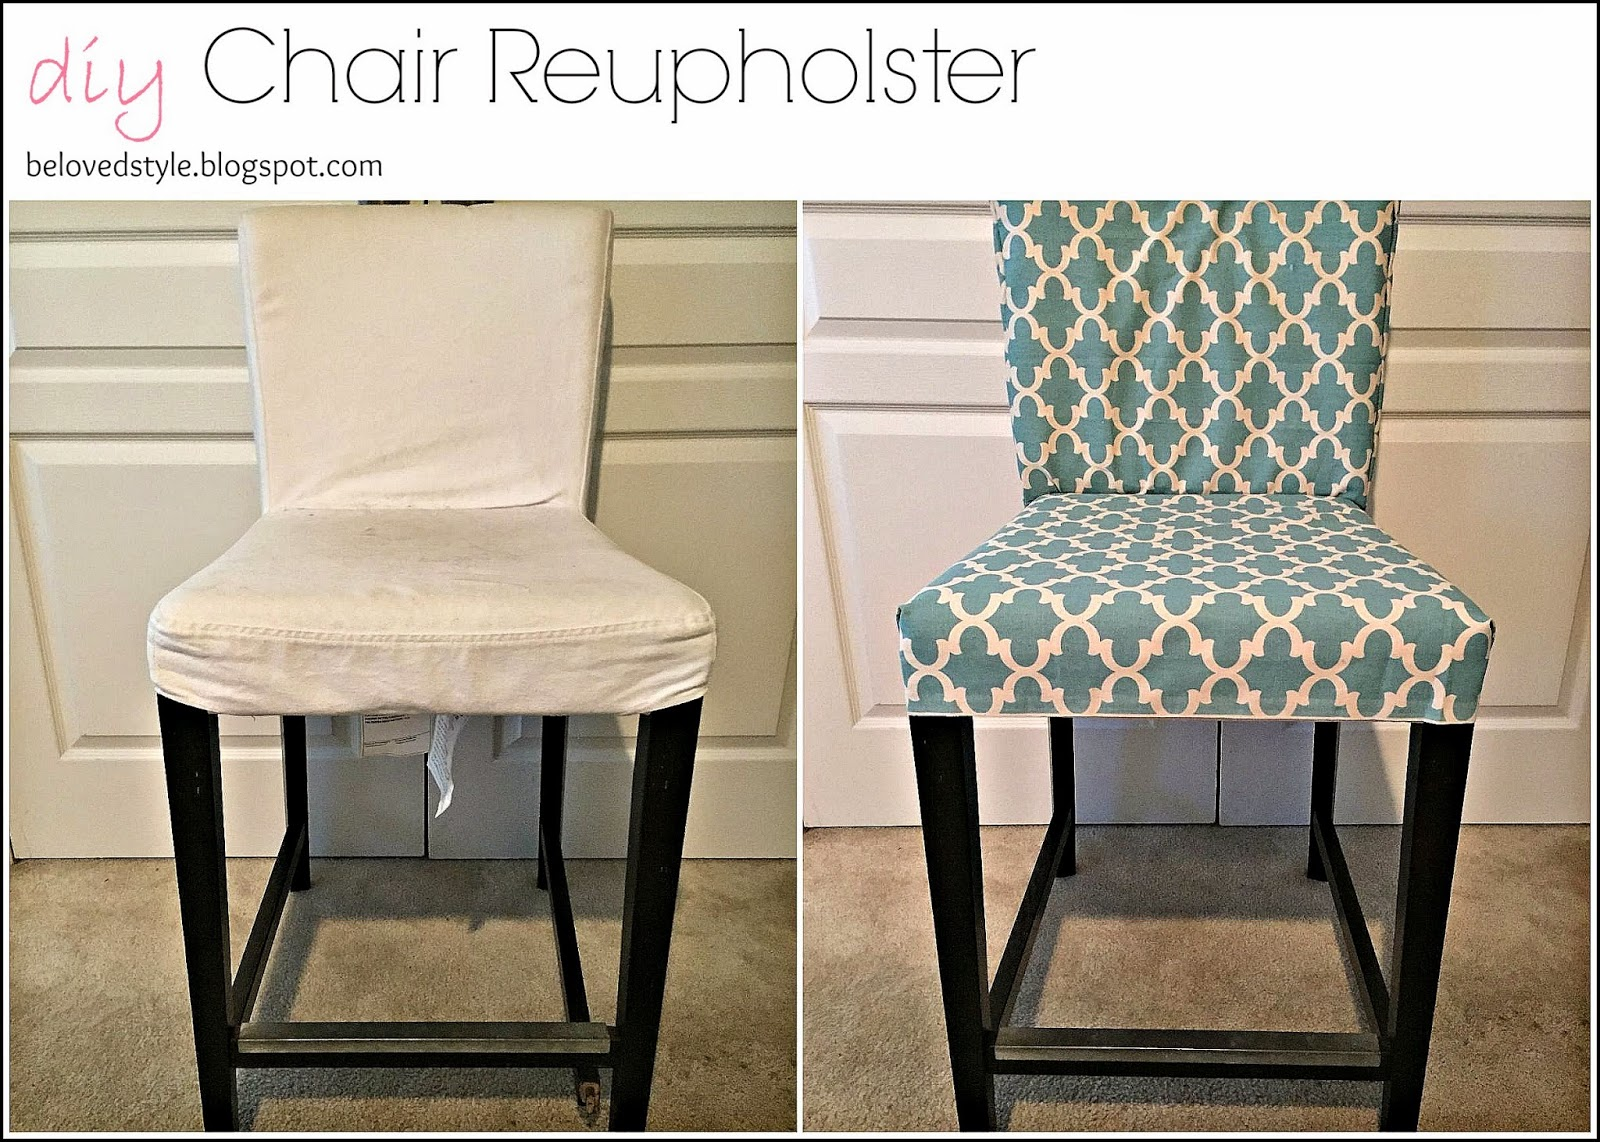 Beloved Style DIY Chair Reupholster No Sew : diy2Bchair2Breupholster from belovedstyle.blogspot.com size 1600 x 1142 jpeg 460kB